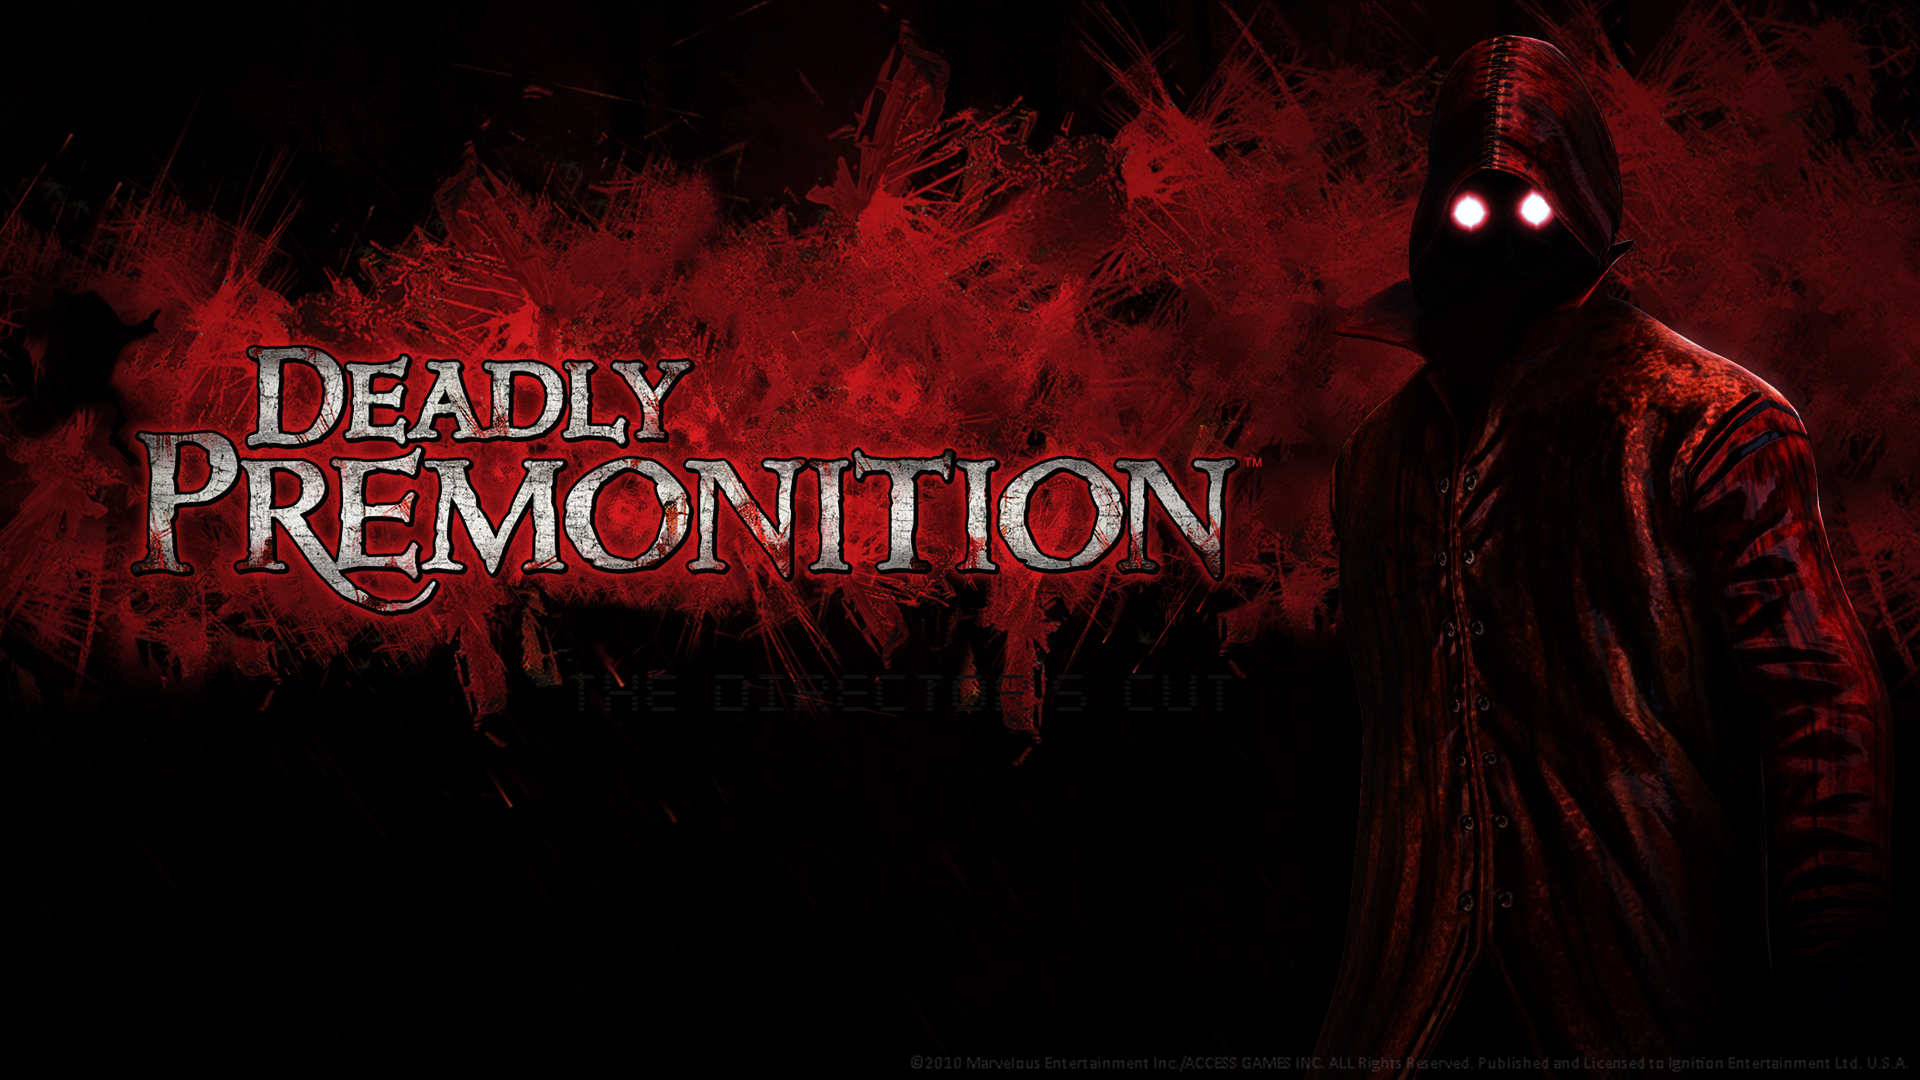 deadly_premonition__directors_cut_wallpaper_by_christian2506-d5vj88t.jpg